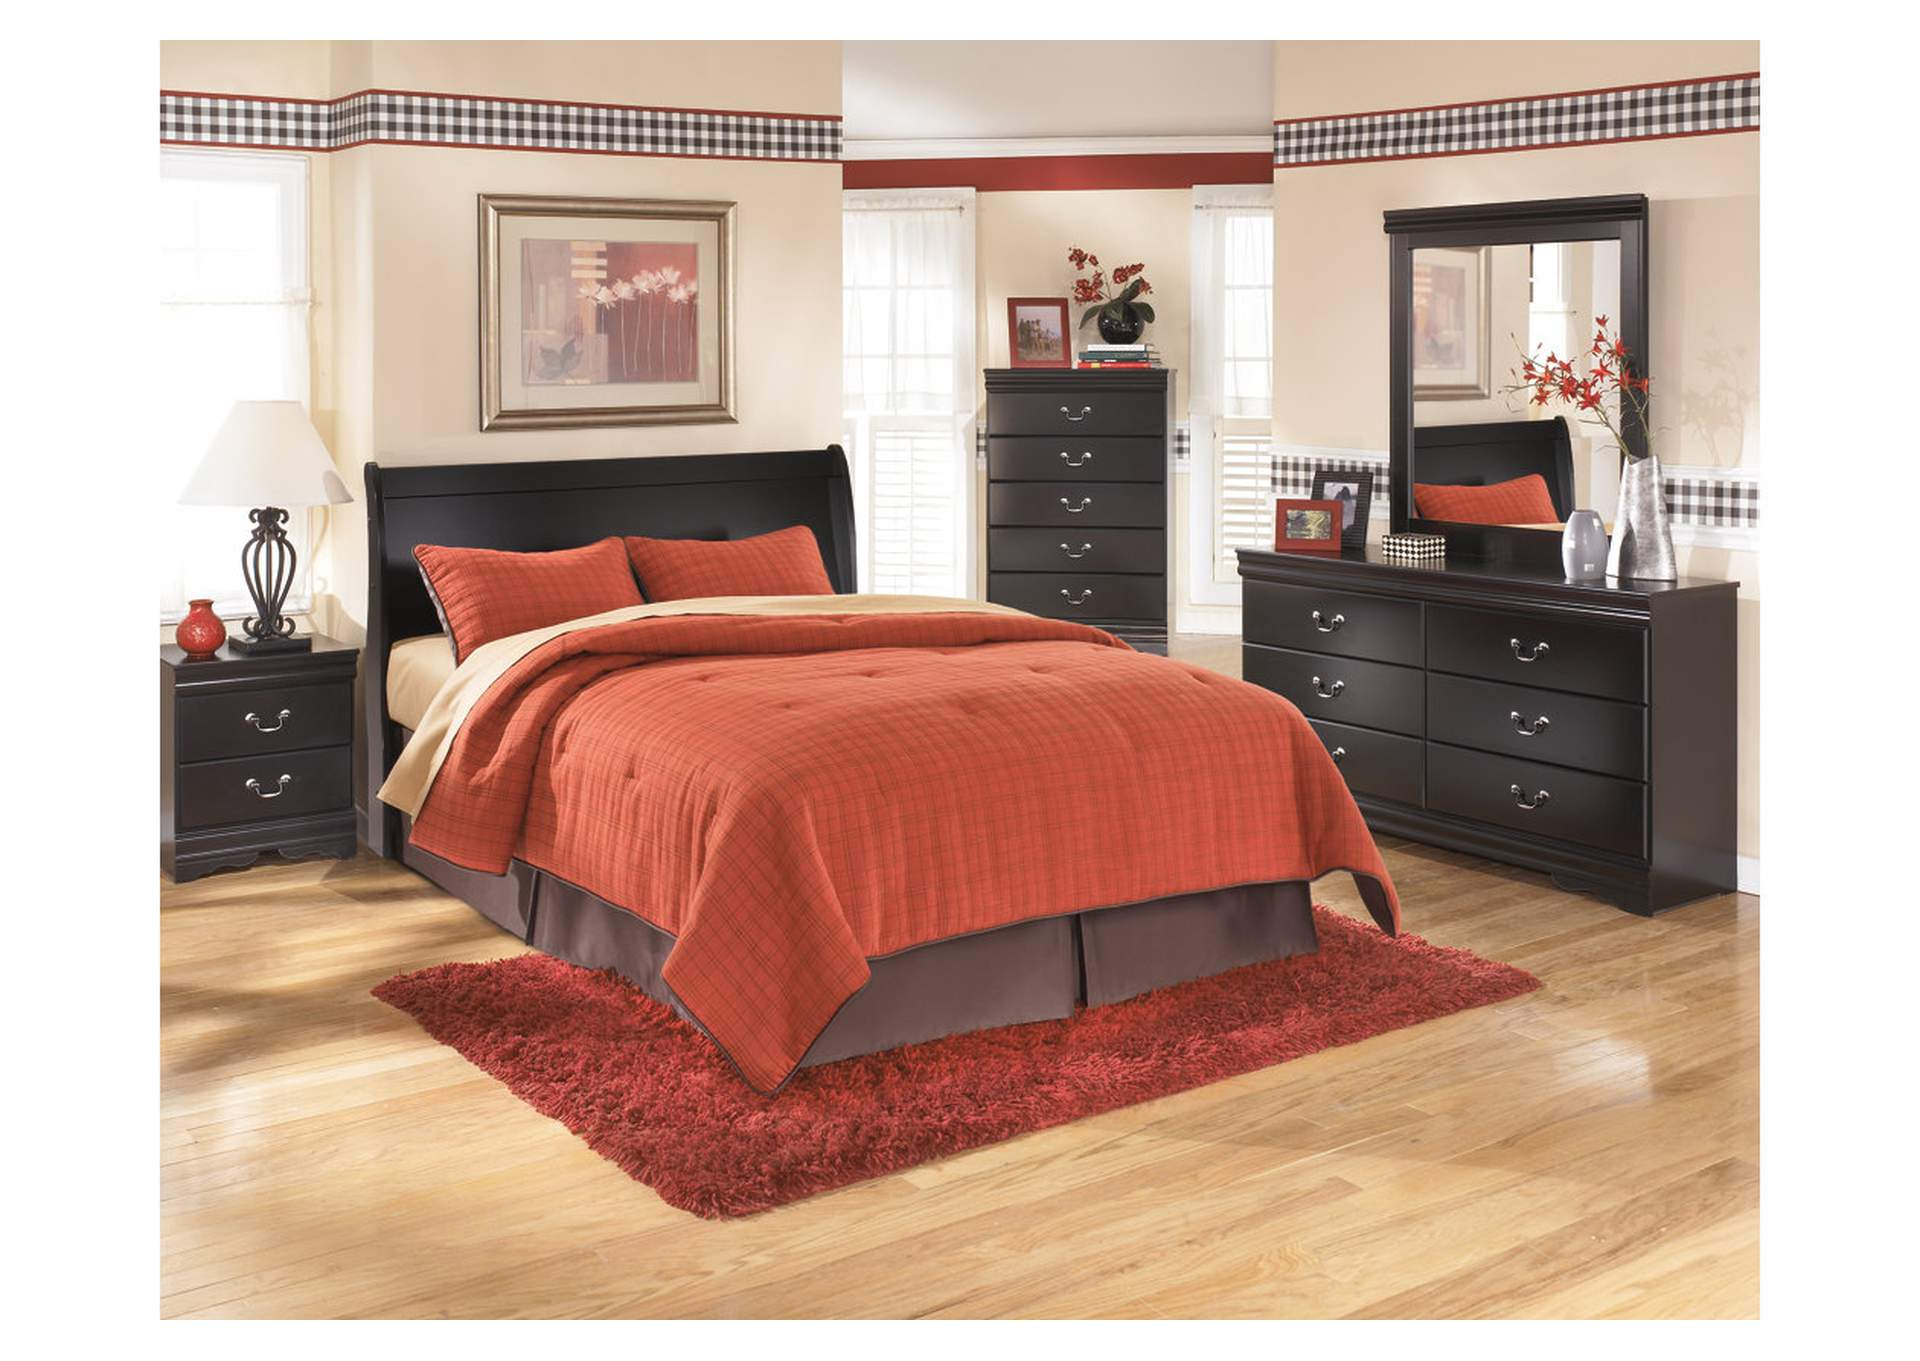 Huey Vineyard King Sleigh Headboard w/Dresser, Mirror & Nightstand,Signature Design By Ashley